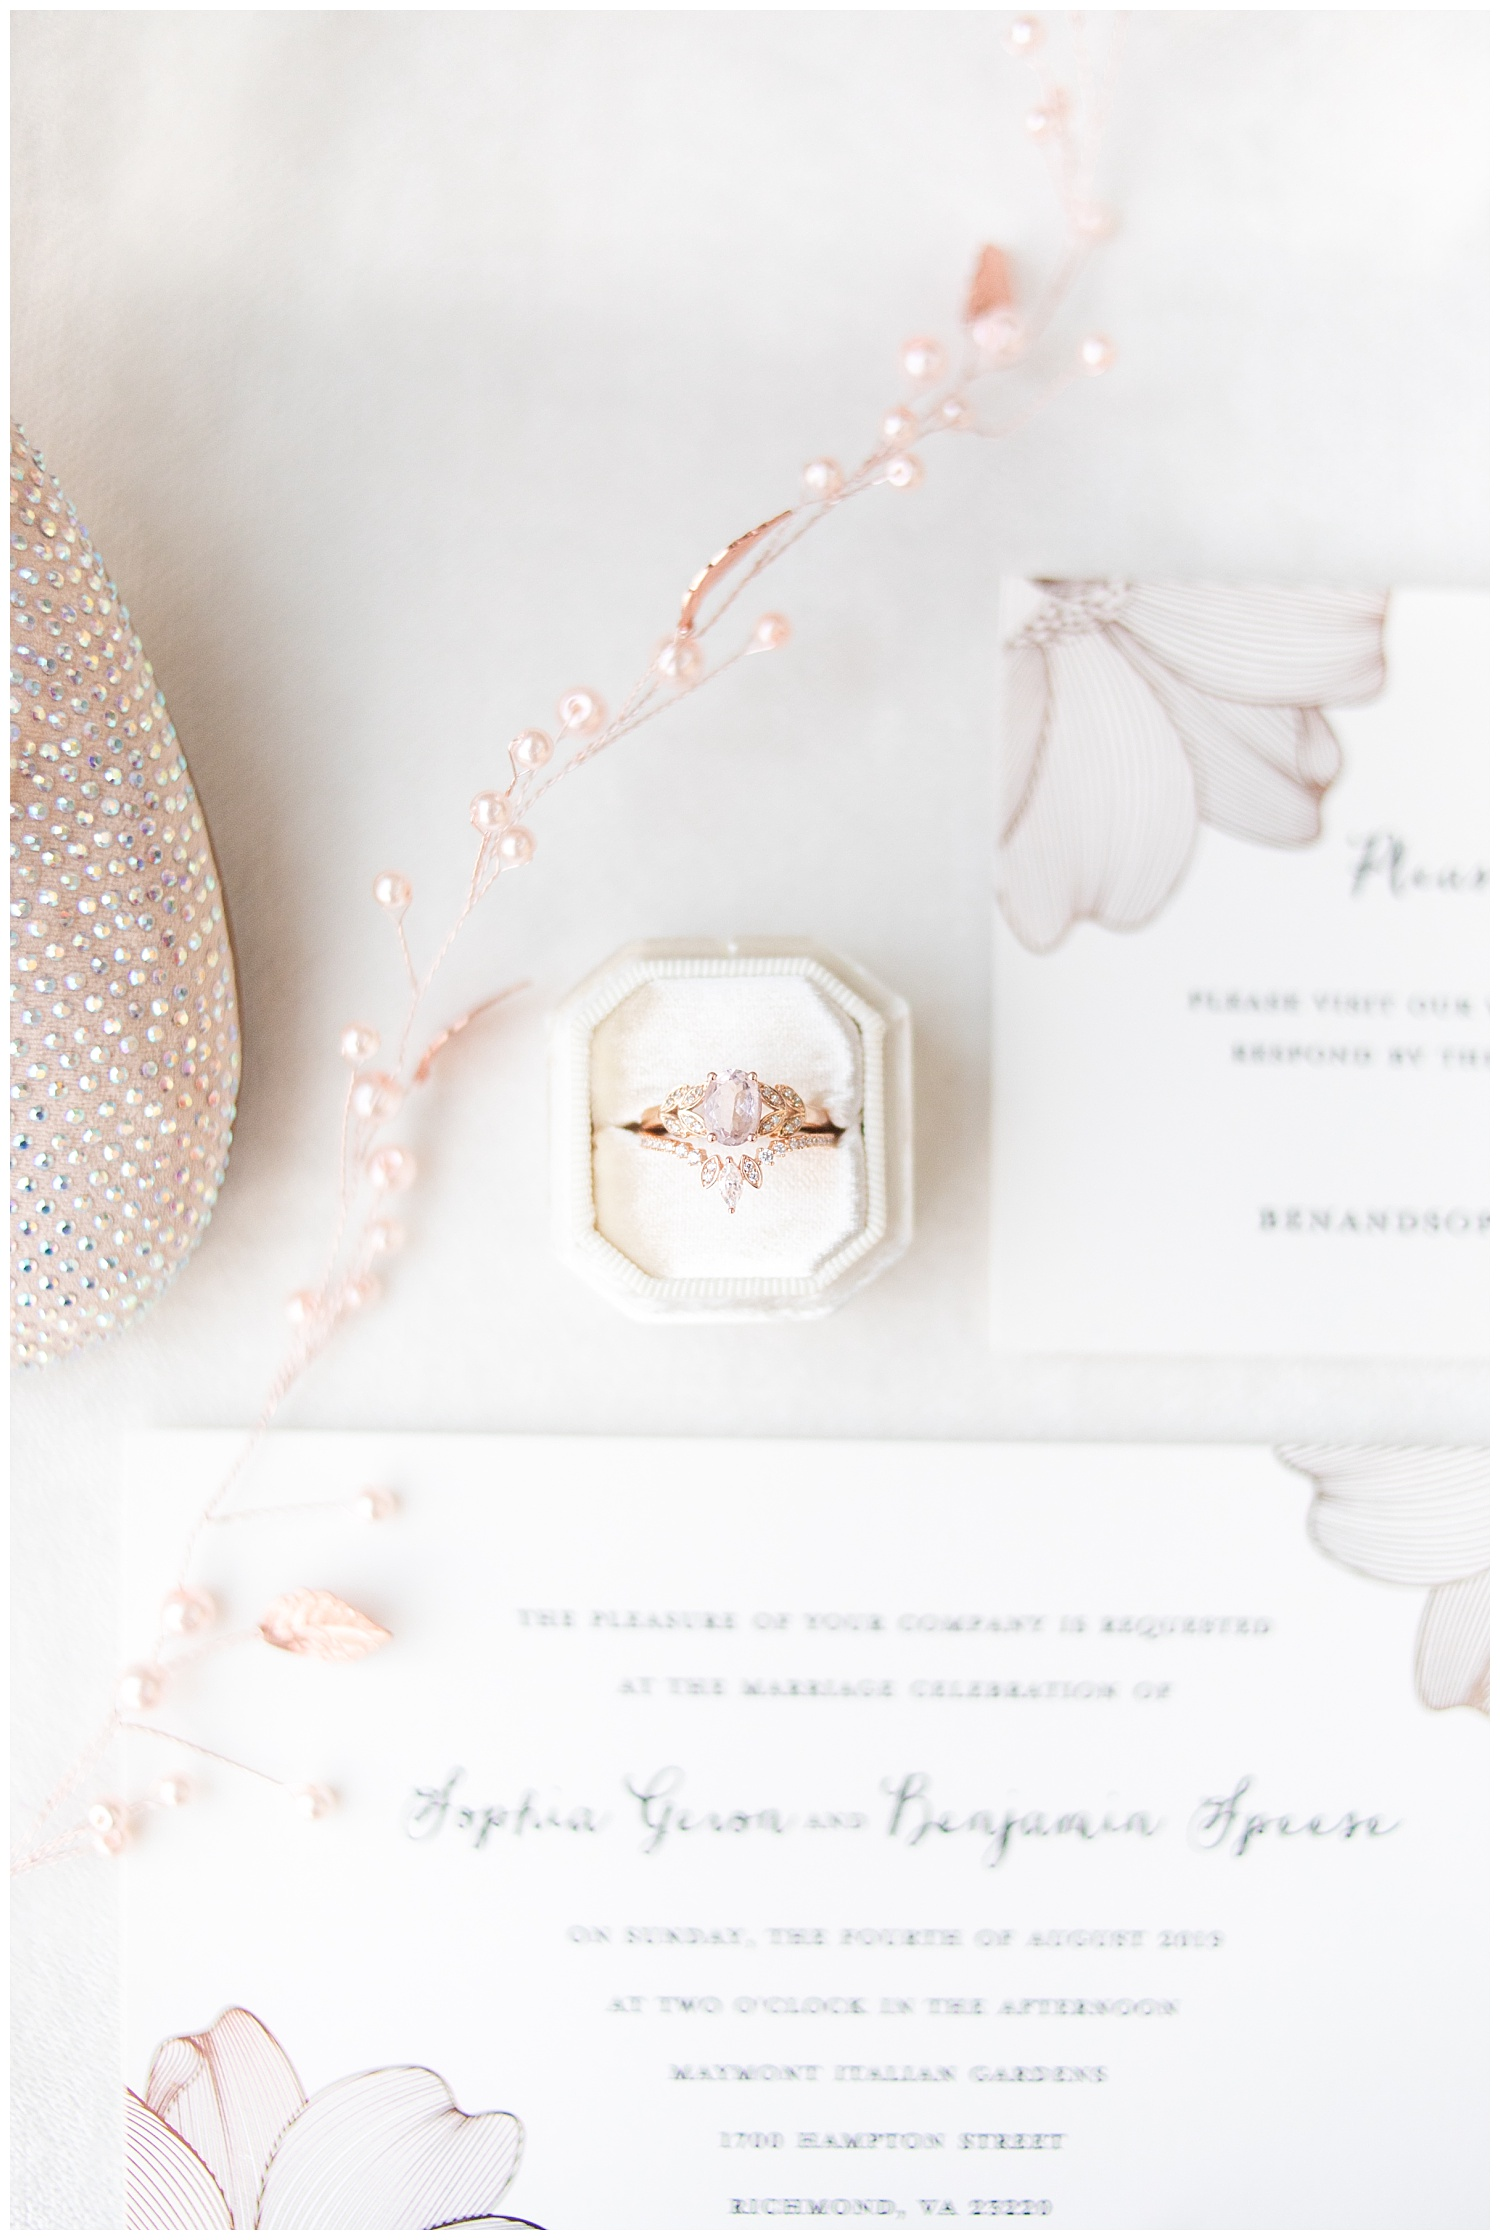 Okay but how gorgeous is Sophia's engagement ring and band?! Easily one of the prettiest rings I've photographed EVER.